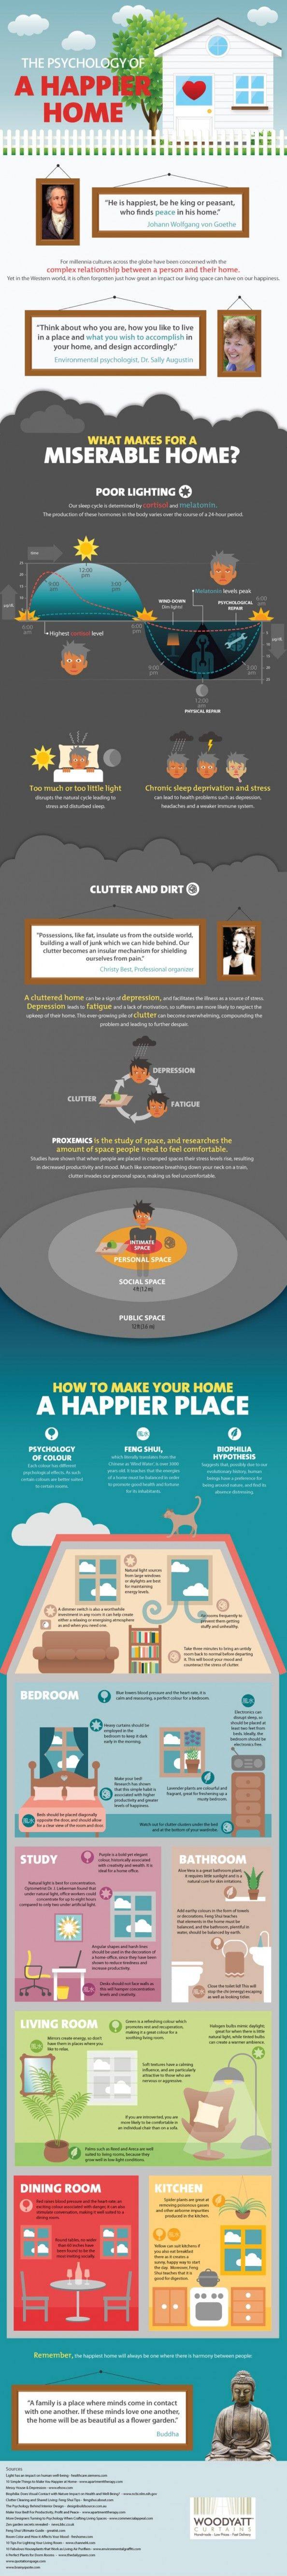 Psychology of a Happier Home Infographic Infographic-- great tips!